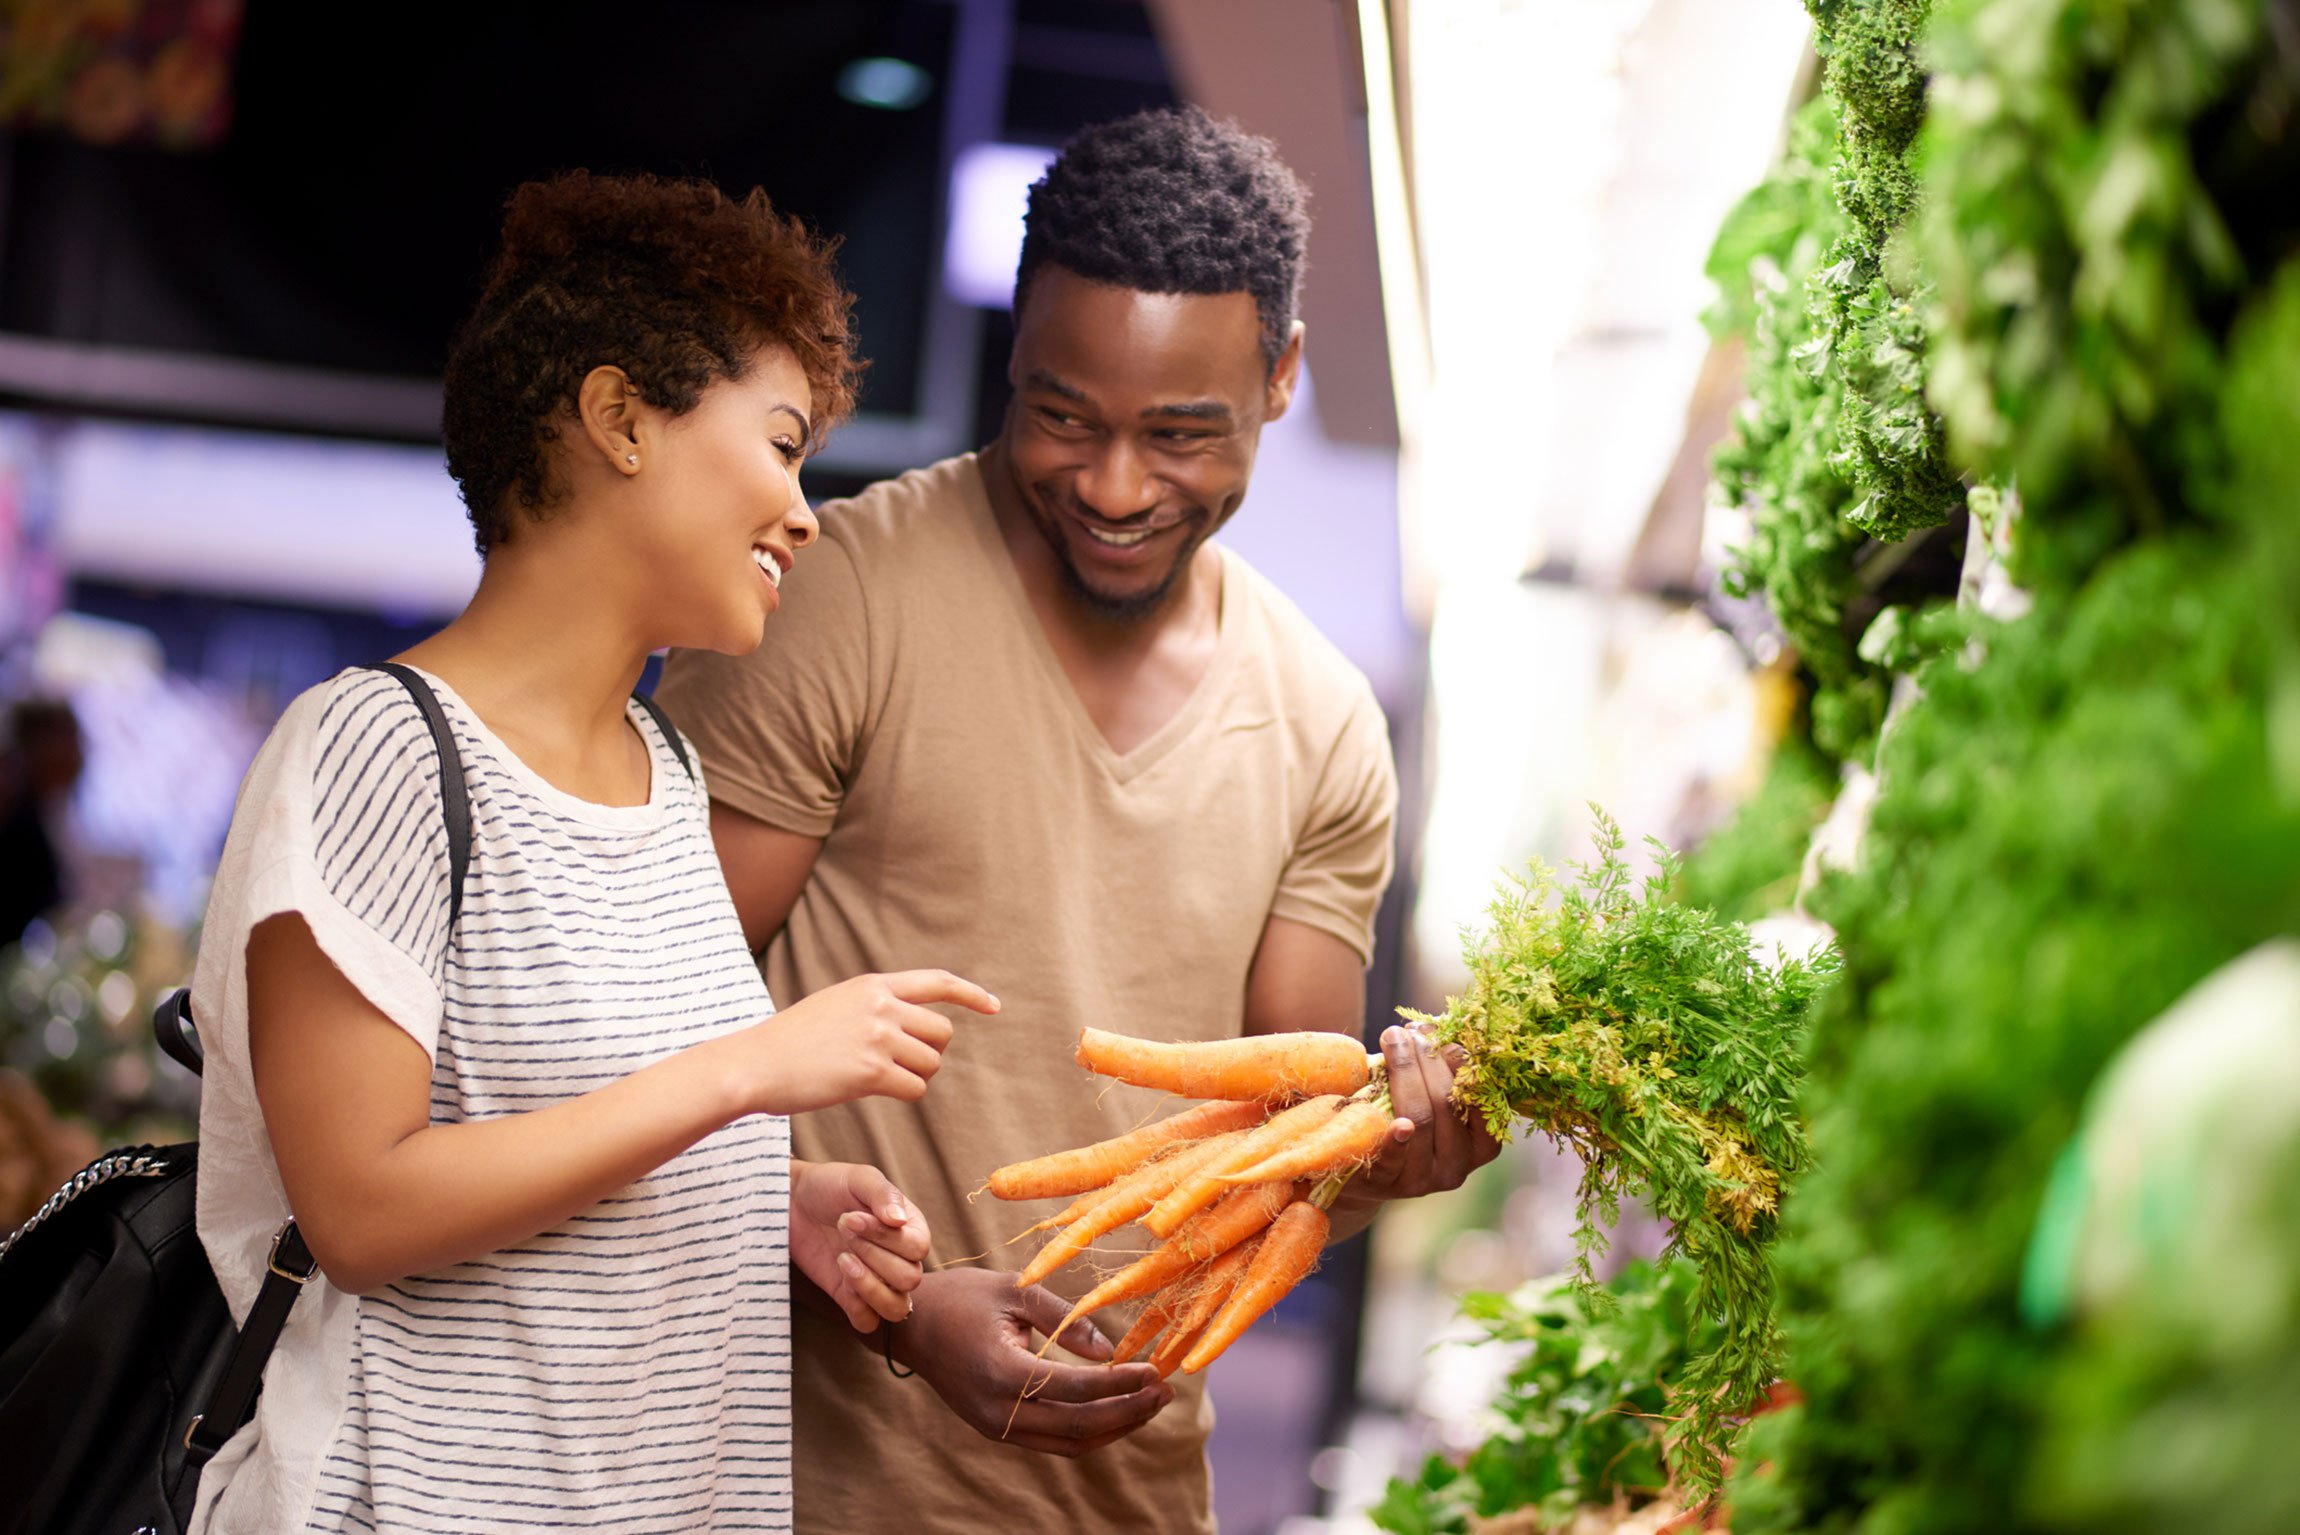 Man and woman looking at carrots in grocery store